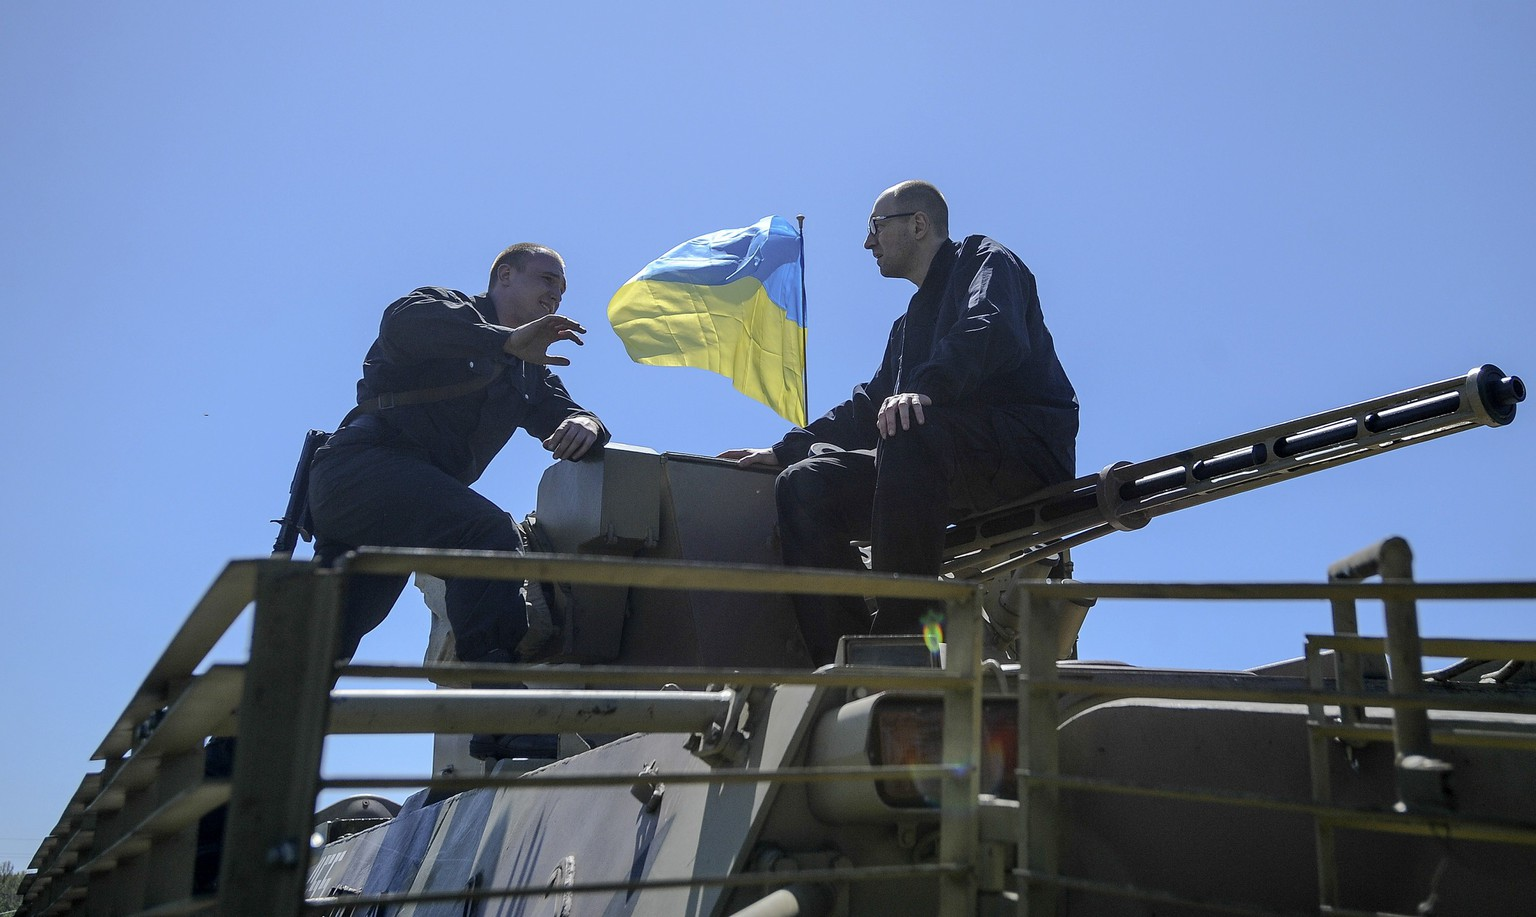 Ukraine's Prime Minister Arseny Yatseniuk (R) talks to a security personnel member on a military vehicle as he arrives to inspect the Ukrainian military grouping near Slaviansk in eastern Ukraine May 7, 2014. REUTERS/Andrew Kravchenko/Pool (UKRAINE - Tags: POLITICS MILITARY)